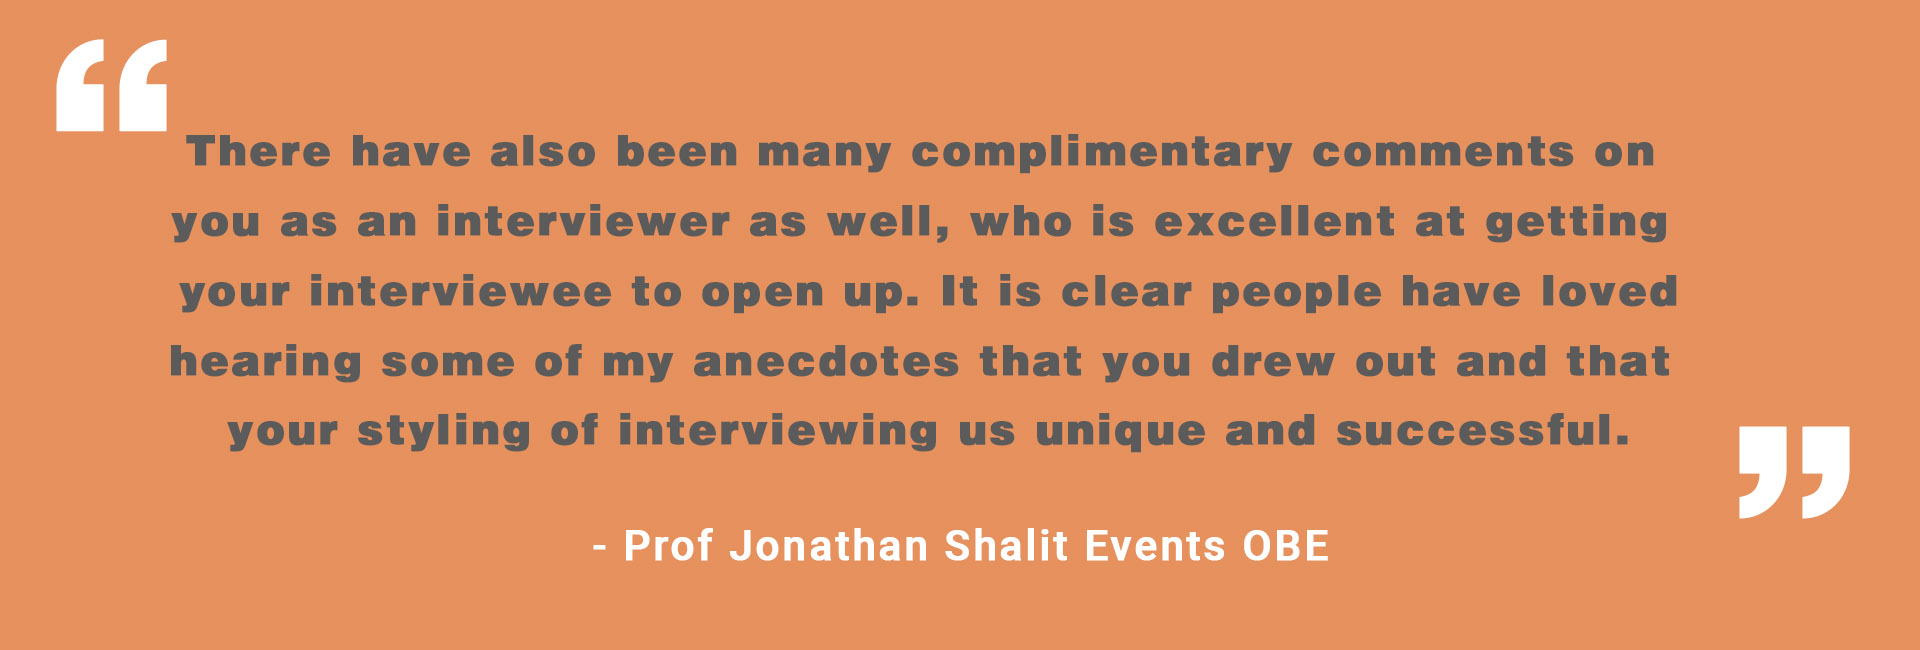 Interviewing Quote Prof Jonathan Shalit Events OBE copy